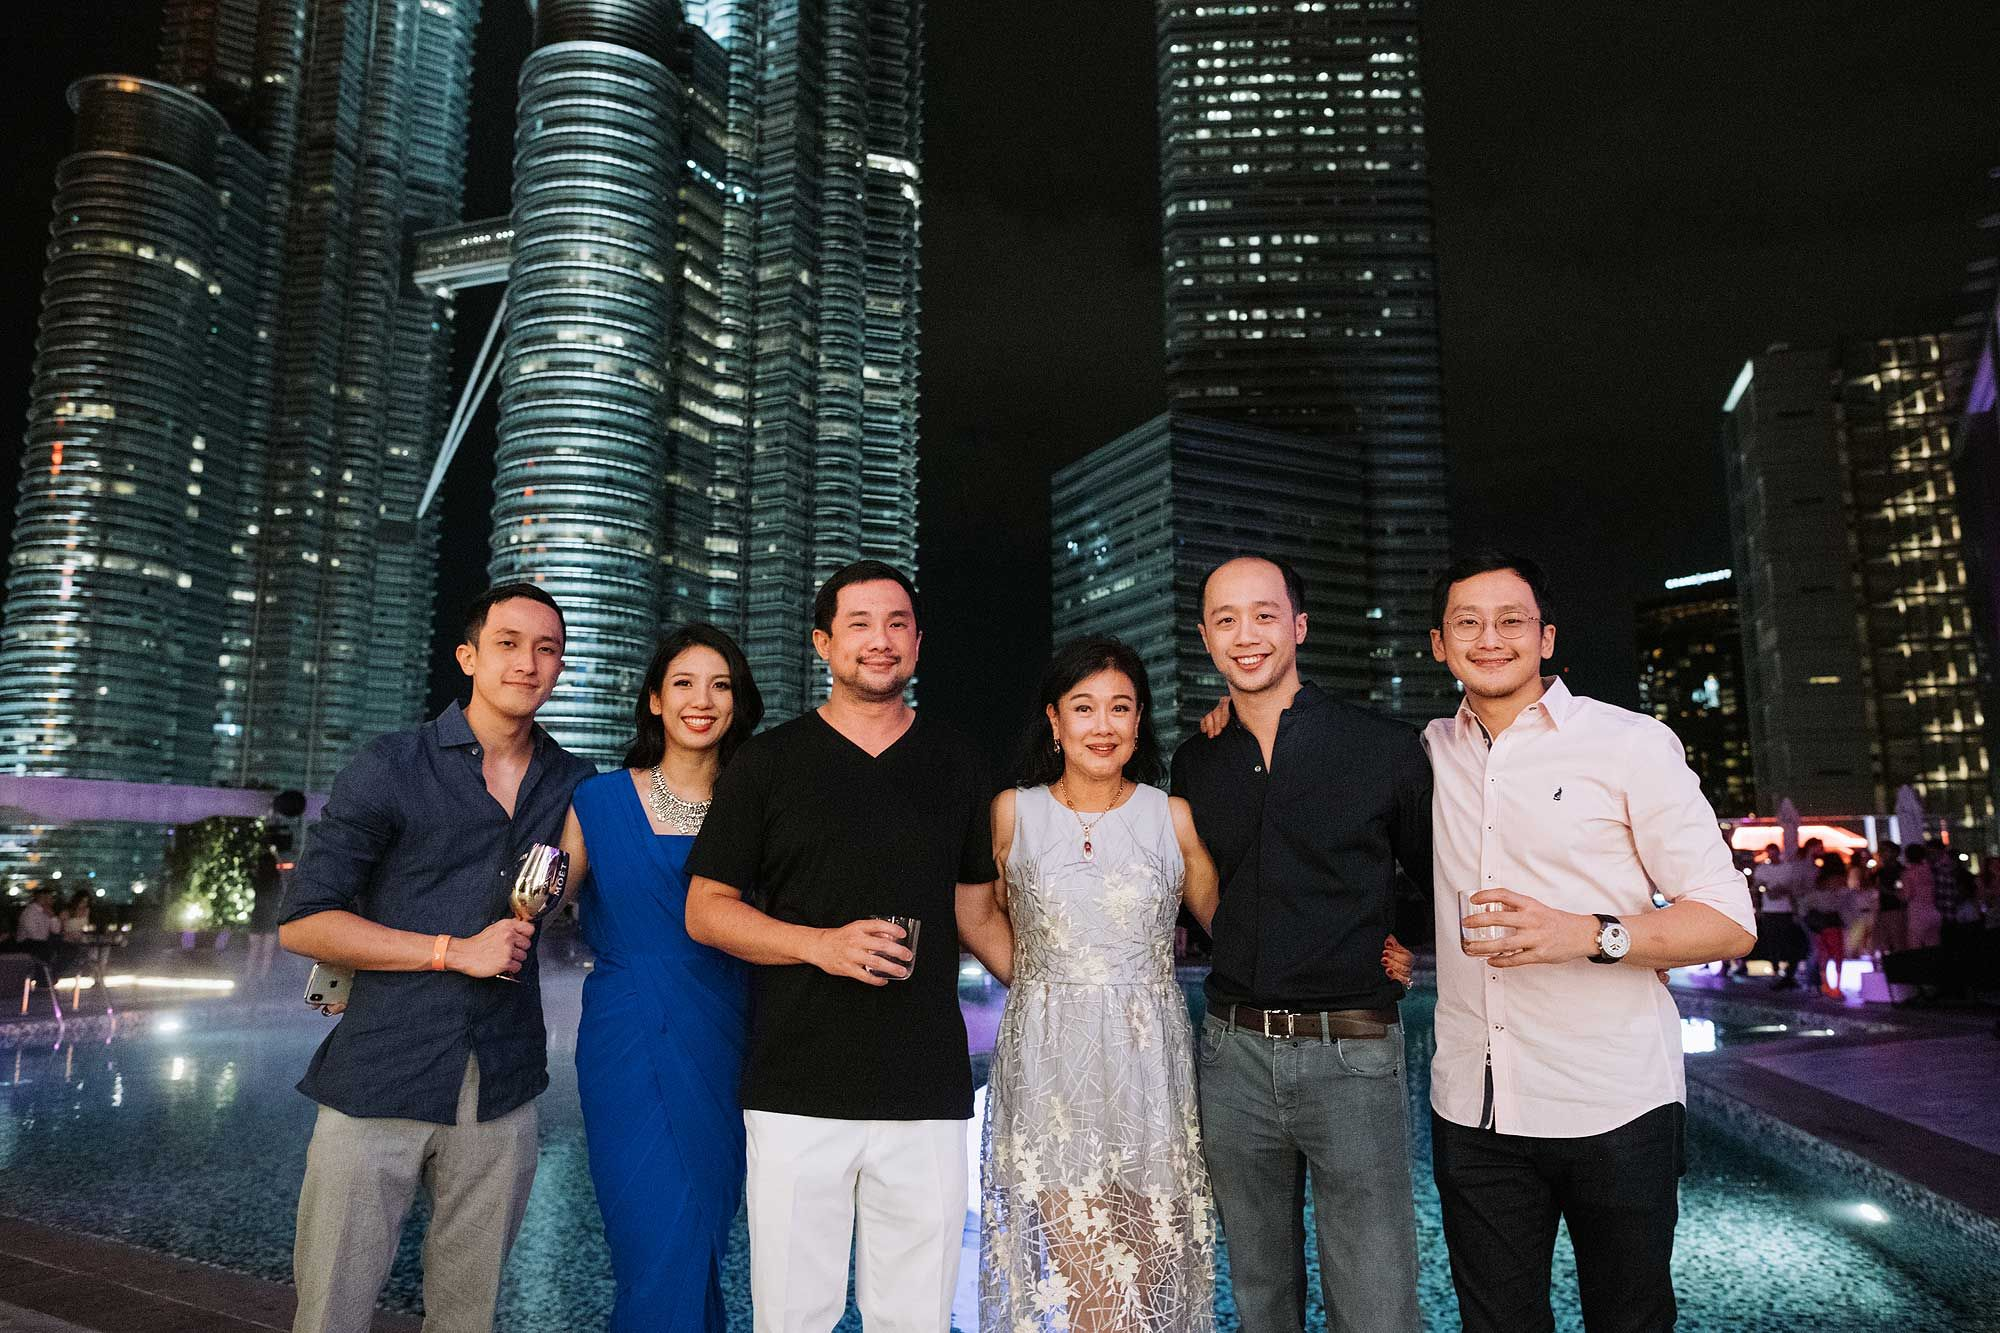 Din Tan, Diana Tan, Dato' Dickson Tan, Puan Sri Ivy Tan, Dion Tan and Dillon Tan